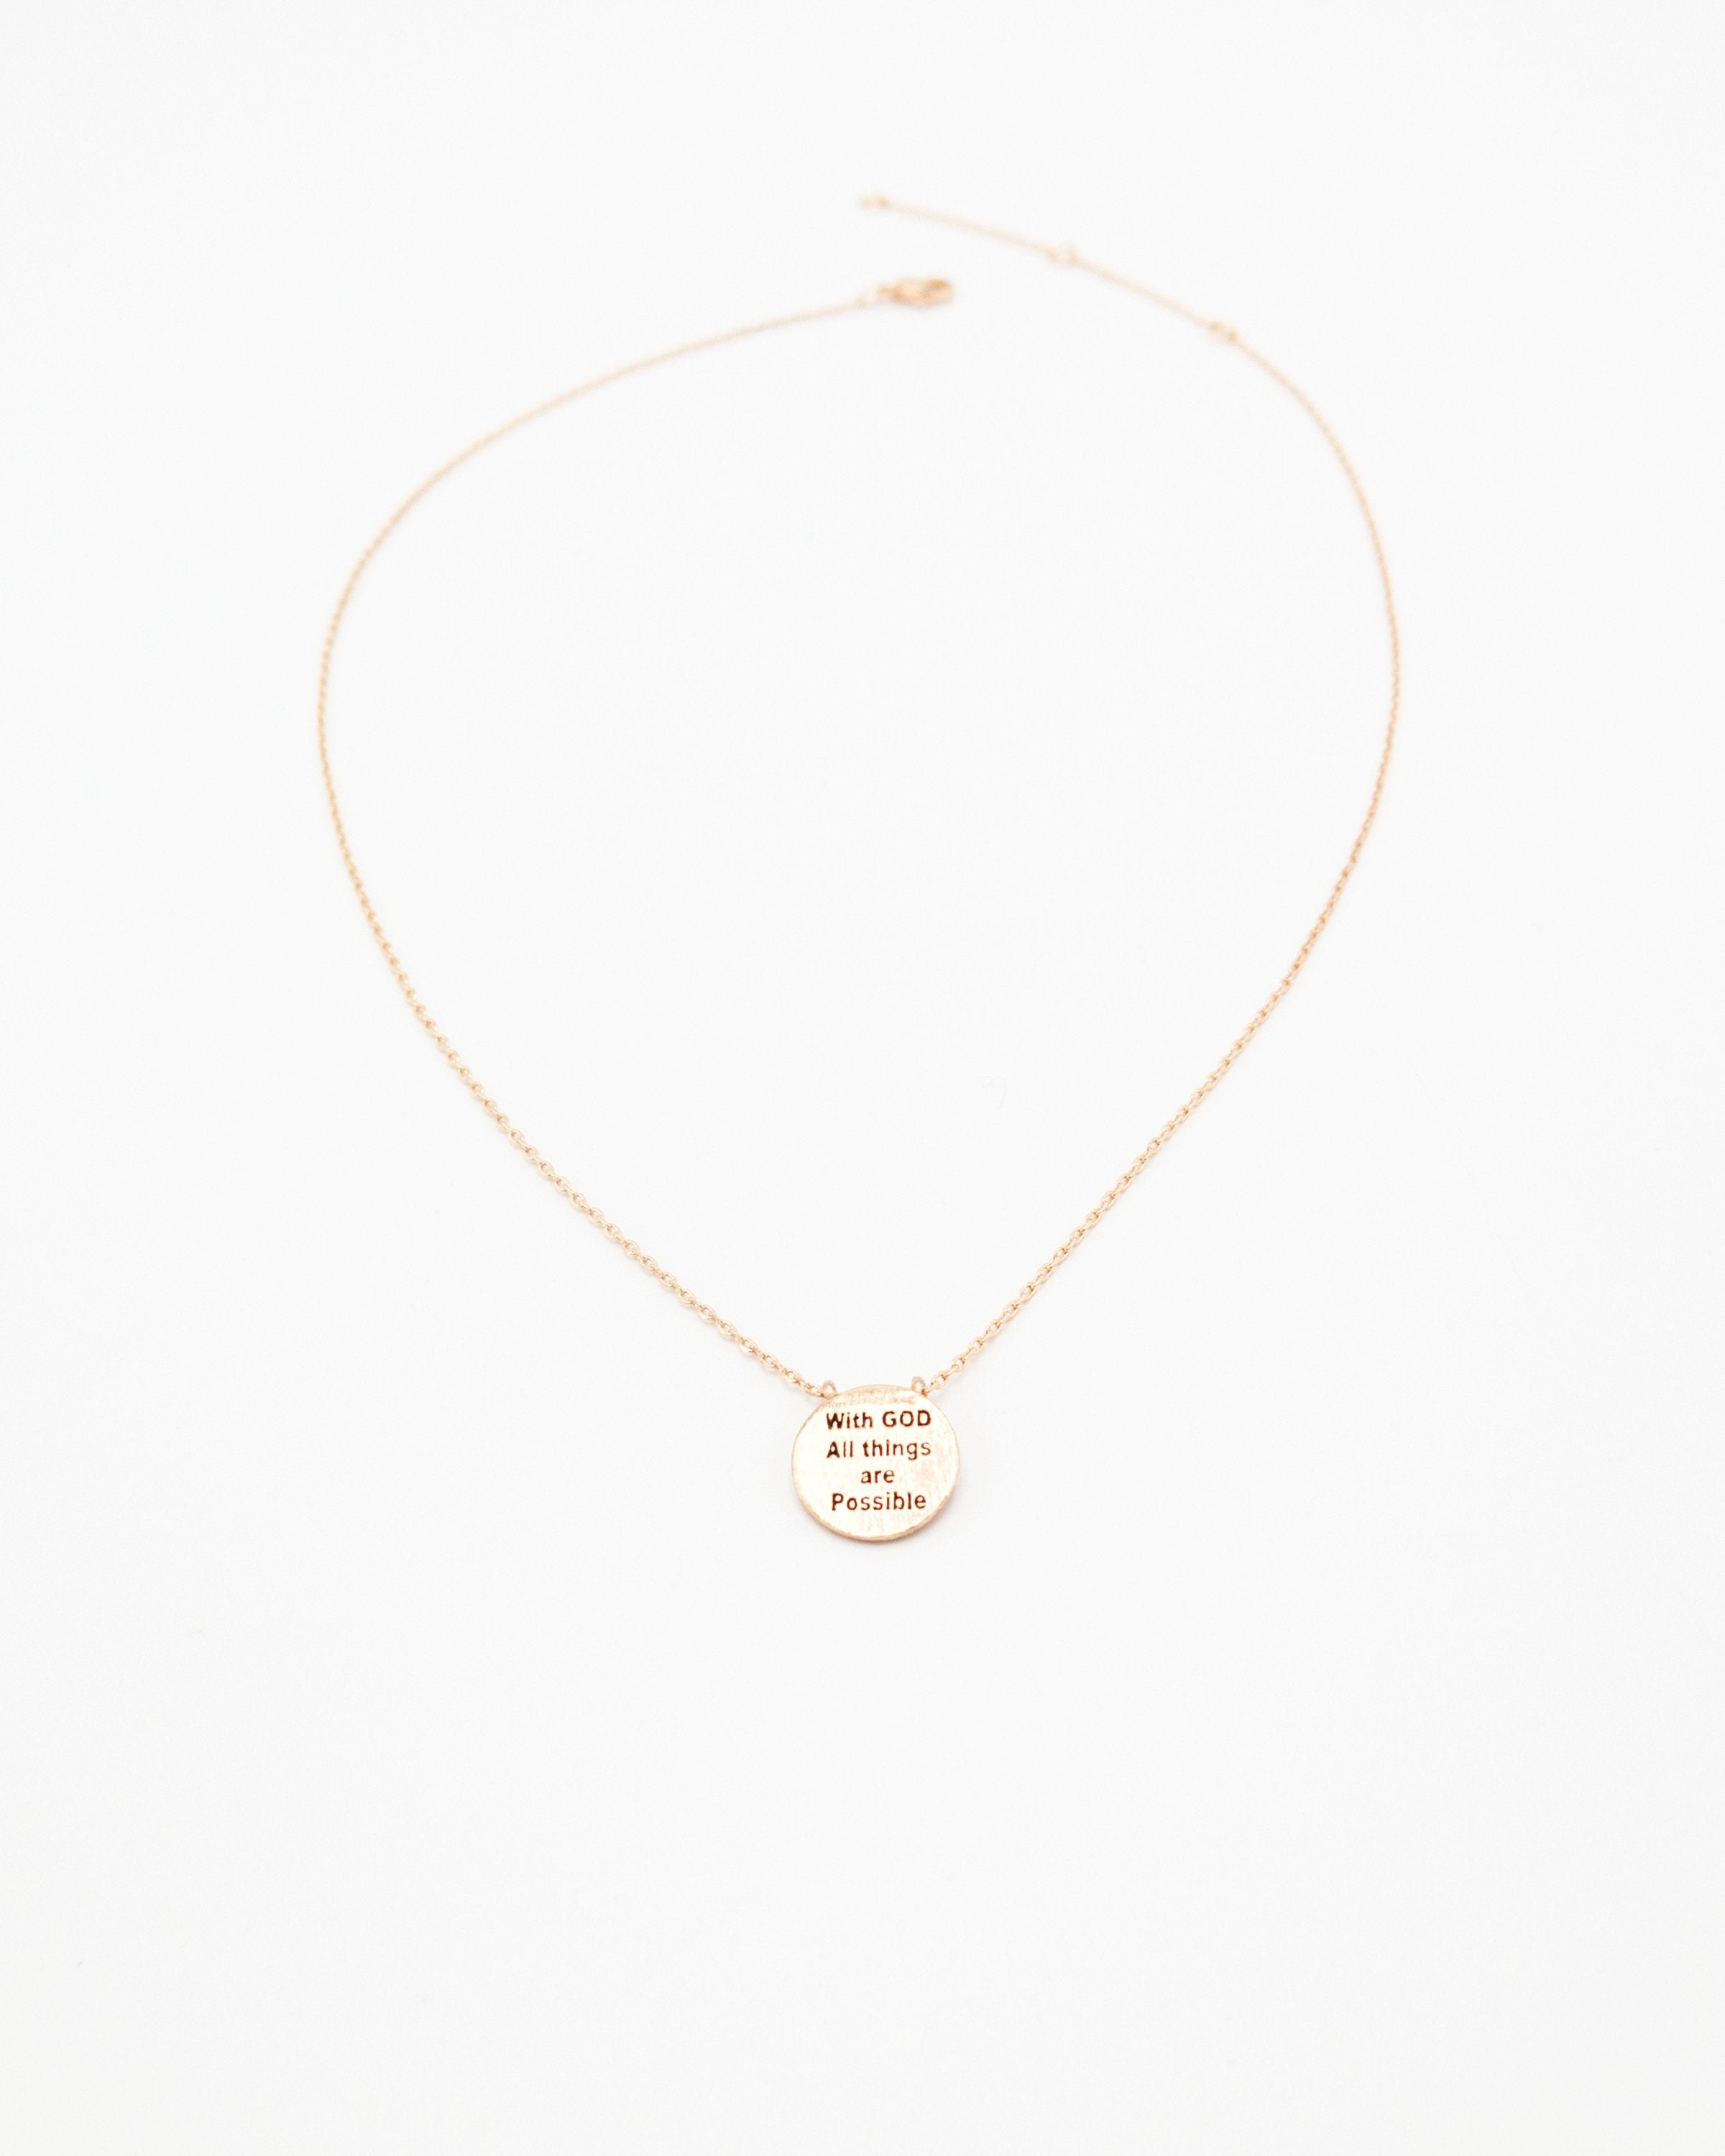 With God All Things Are Possible Inspirational Round Necklace in rose gold